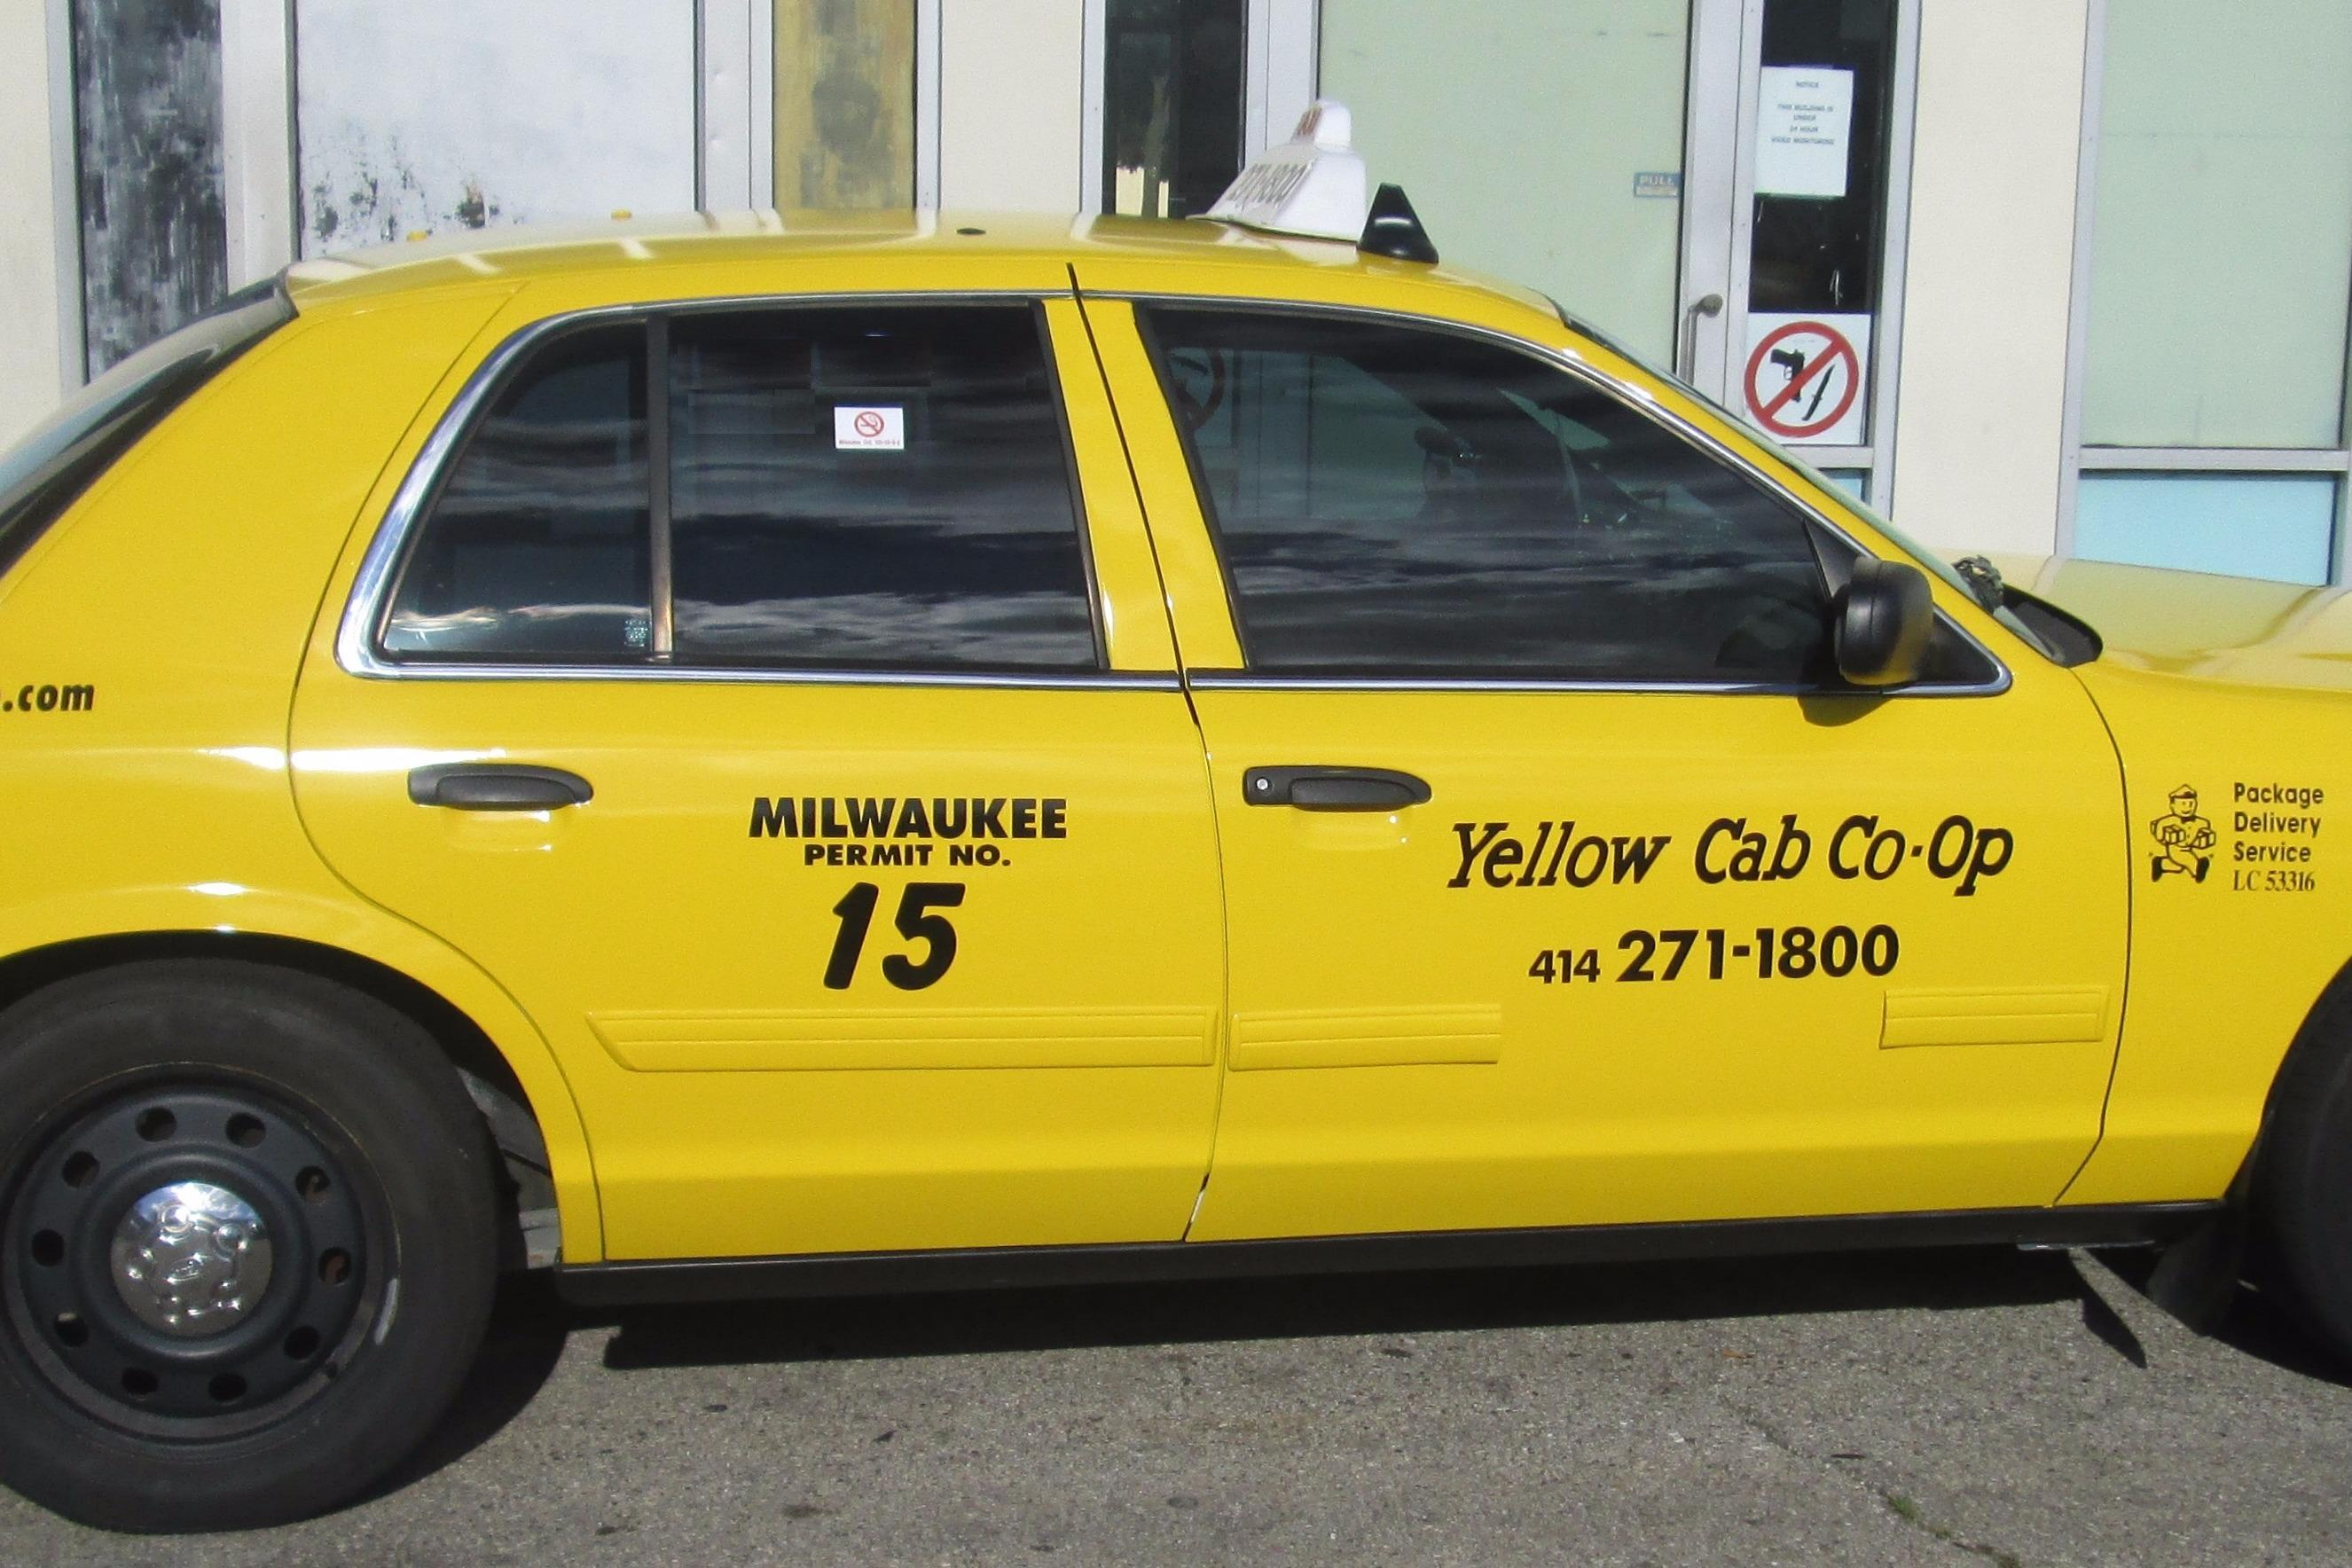 YELLOW CAB CO-OP 1747 N 6th st Milwaukee, WI Taxis - MapQuest